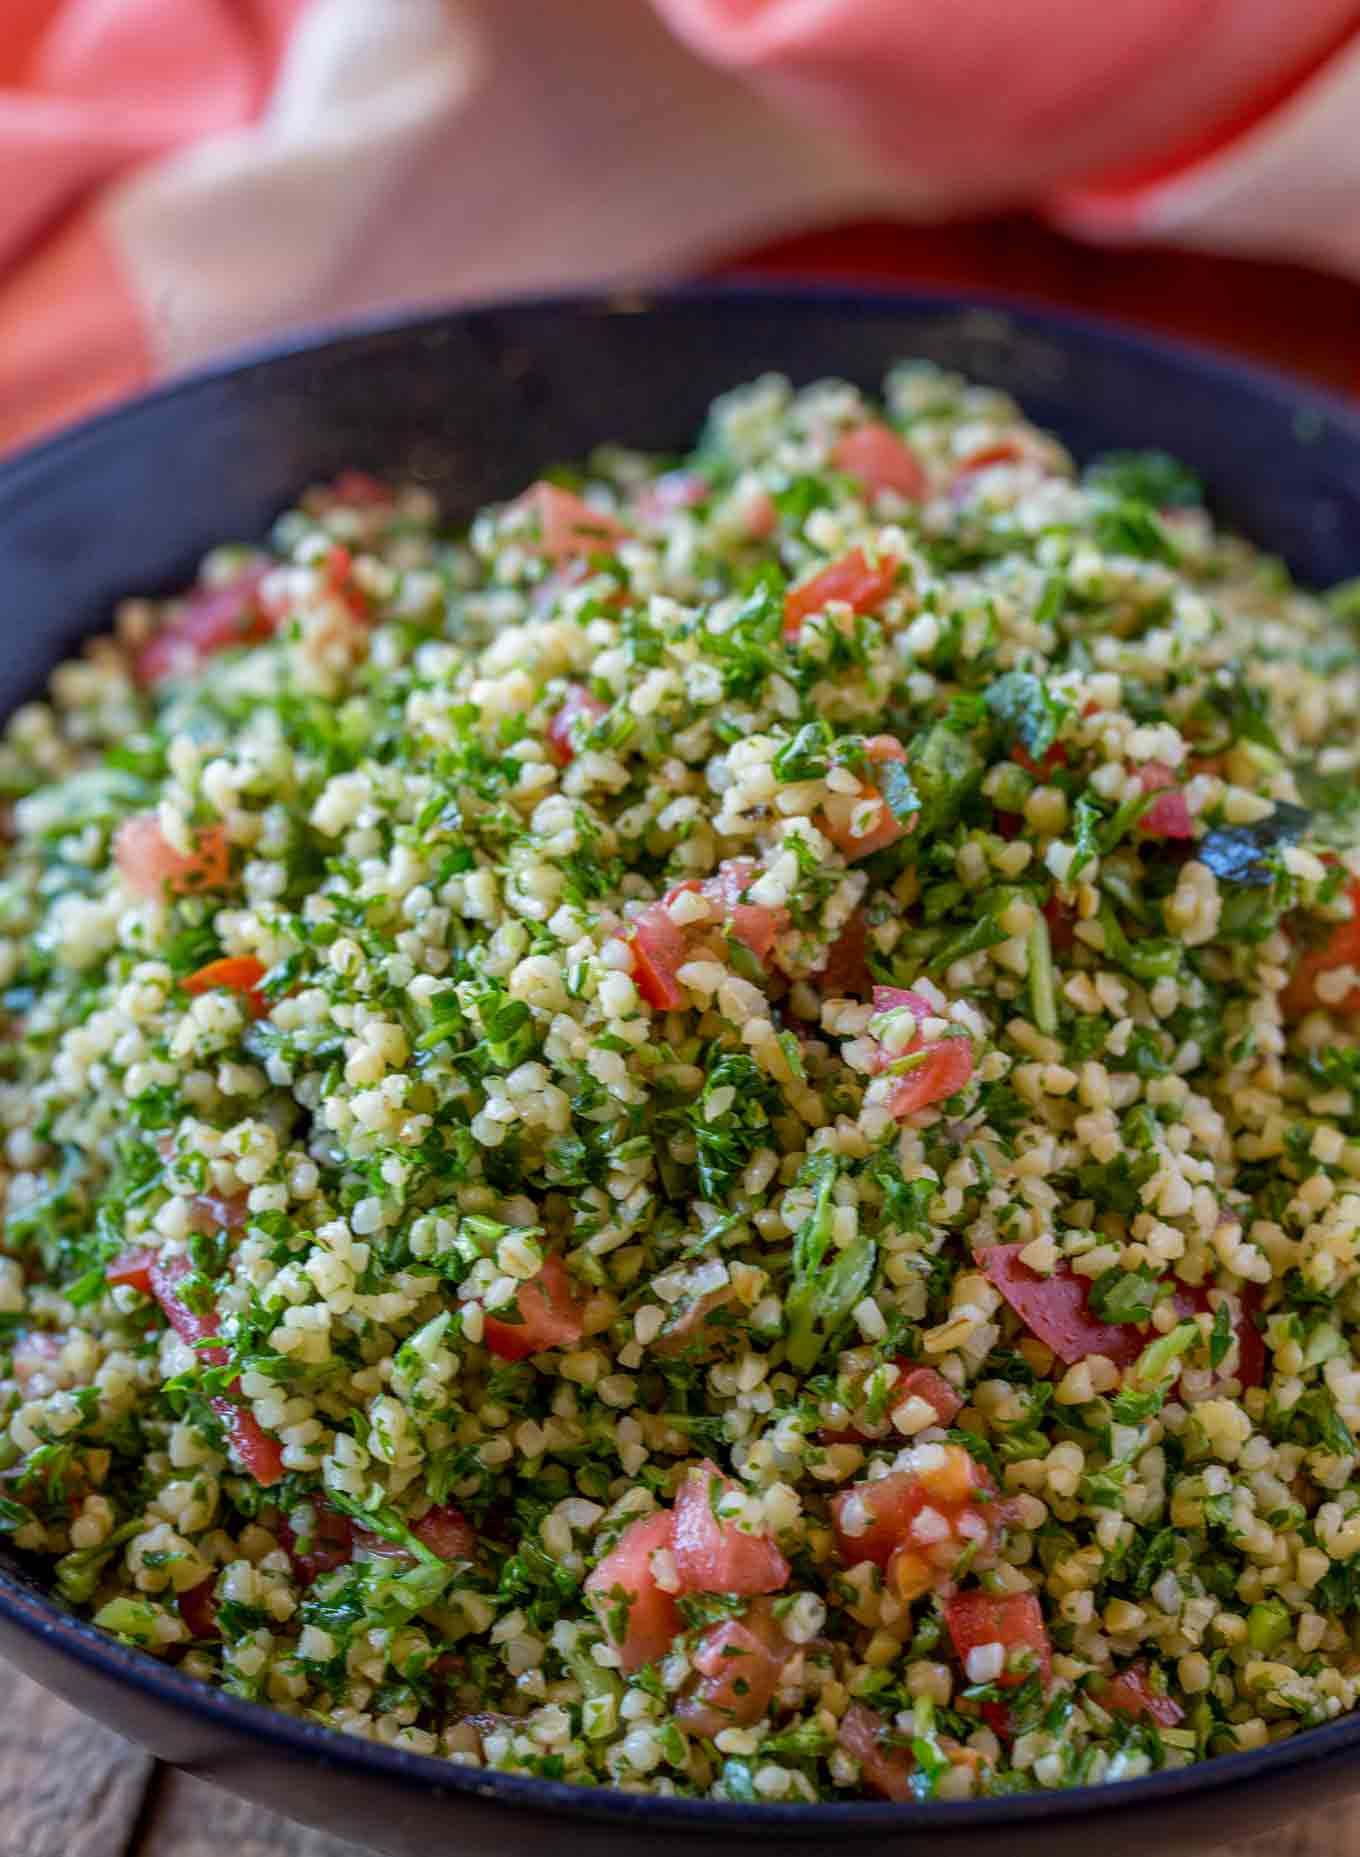 Bulgur, tomatoes, parsley and mint are classic ingredients in this tabbouli salad.